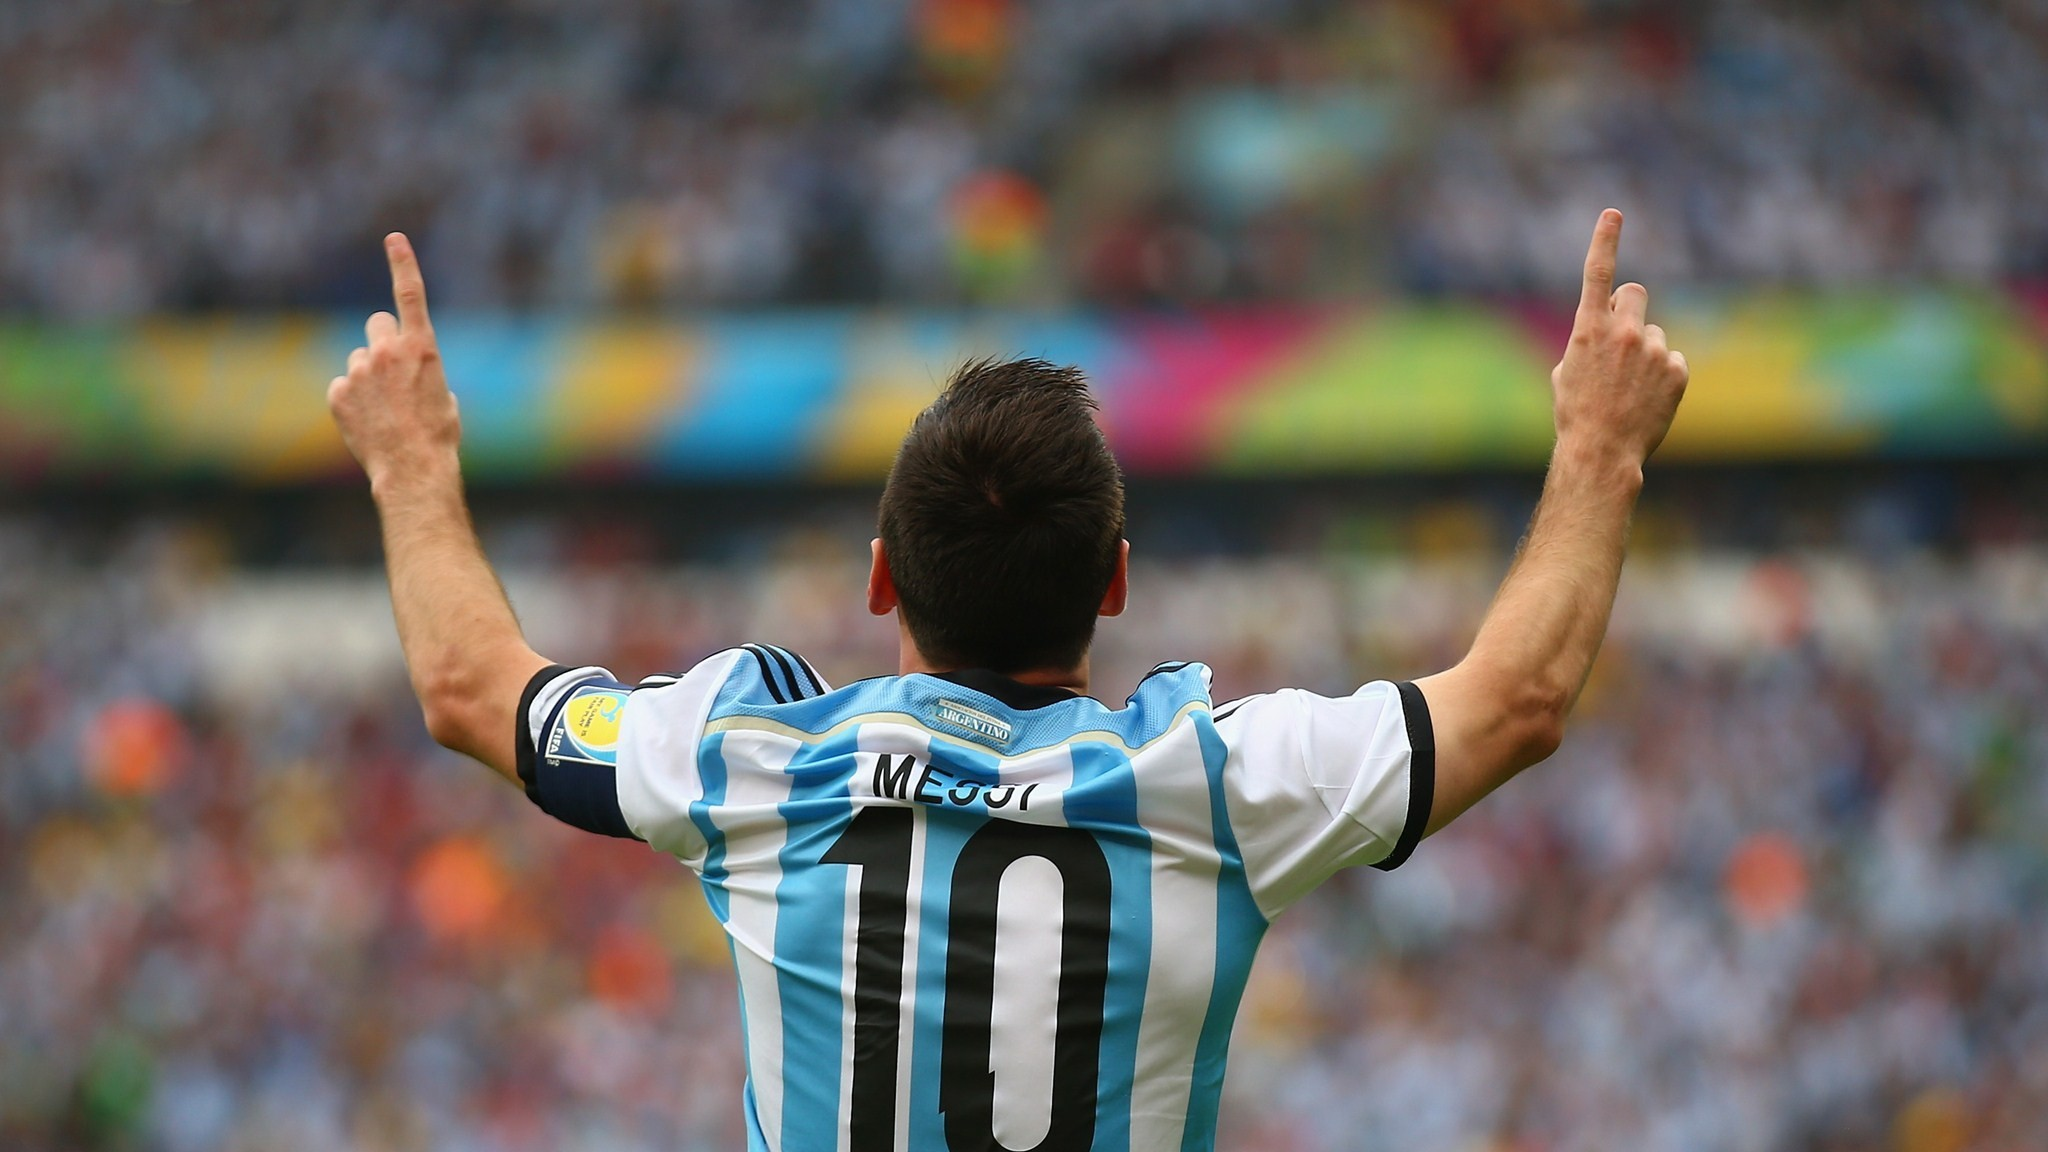 Messi Full Hd Wallpaper Lionel Messi Argentina Wallpapers Hd Desktop And Mobile